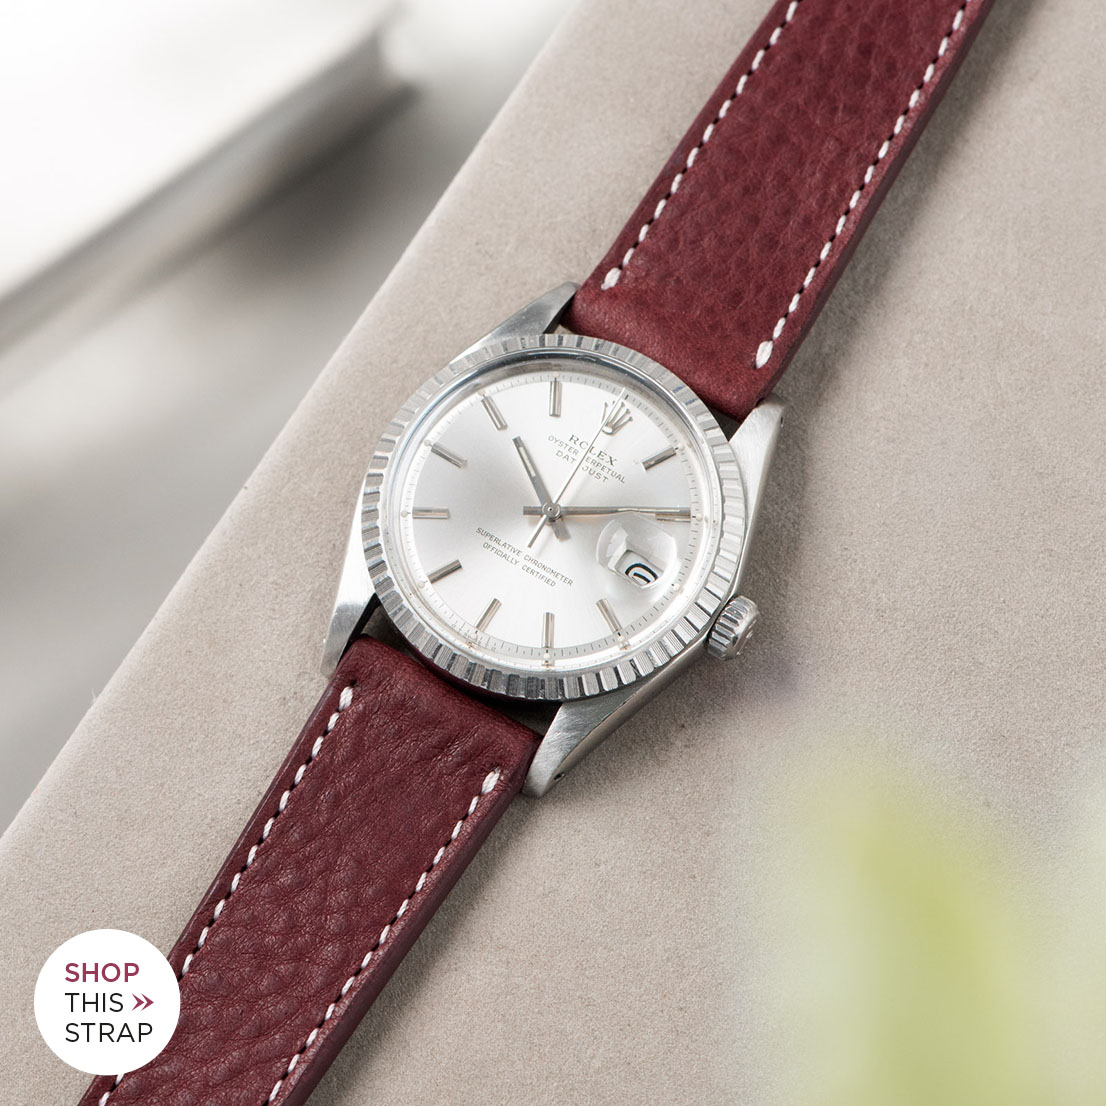 Bulang and sons_Strap Guide_Rolex Datejust Silverdial 1601 1603 1600 1630_BURGUNDY RED LEATHER WATCH STRAP